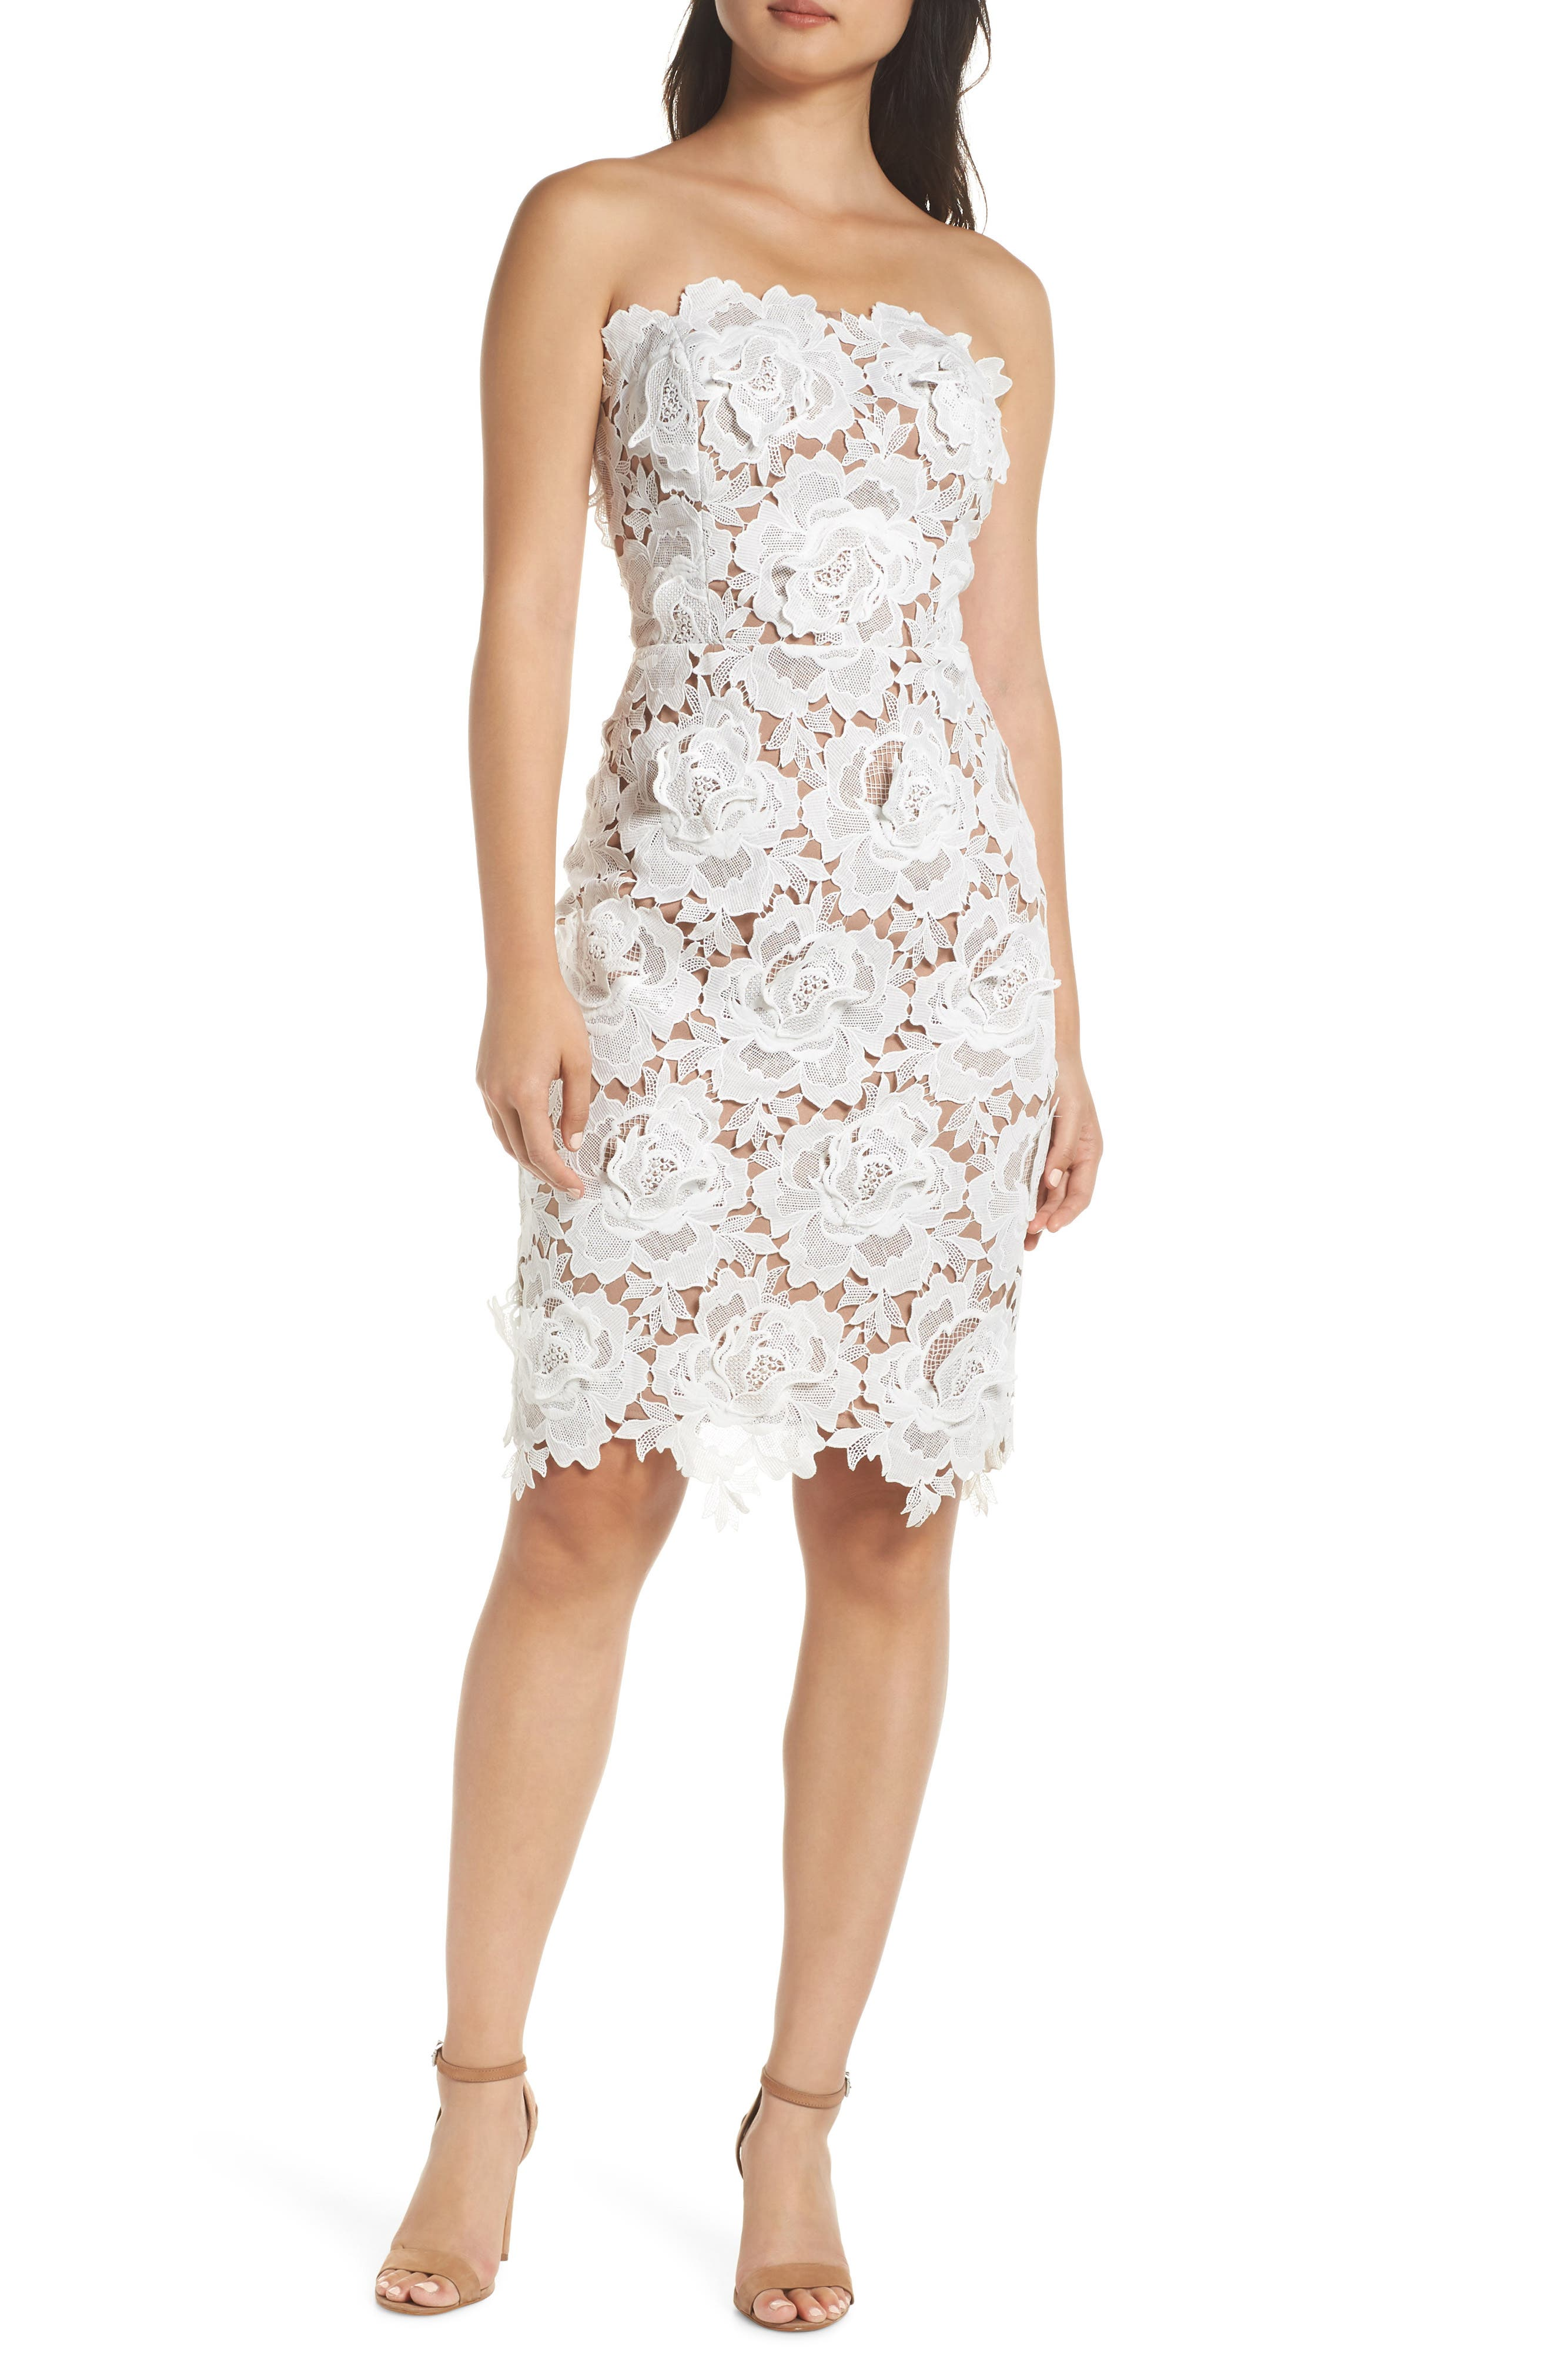 Jade Strapless Lace Dress,                             Main thumbnail 1, color,                             WHITE-NUDE